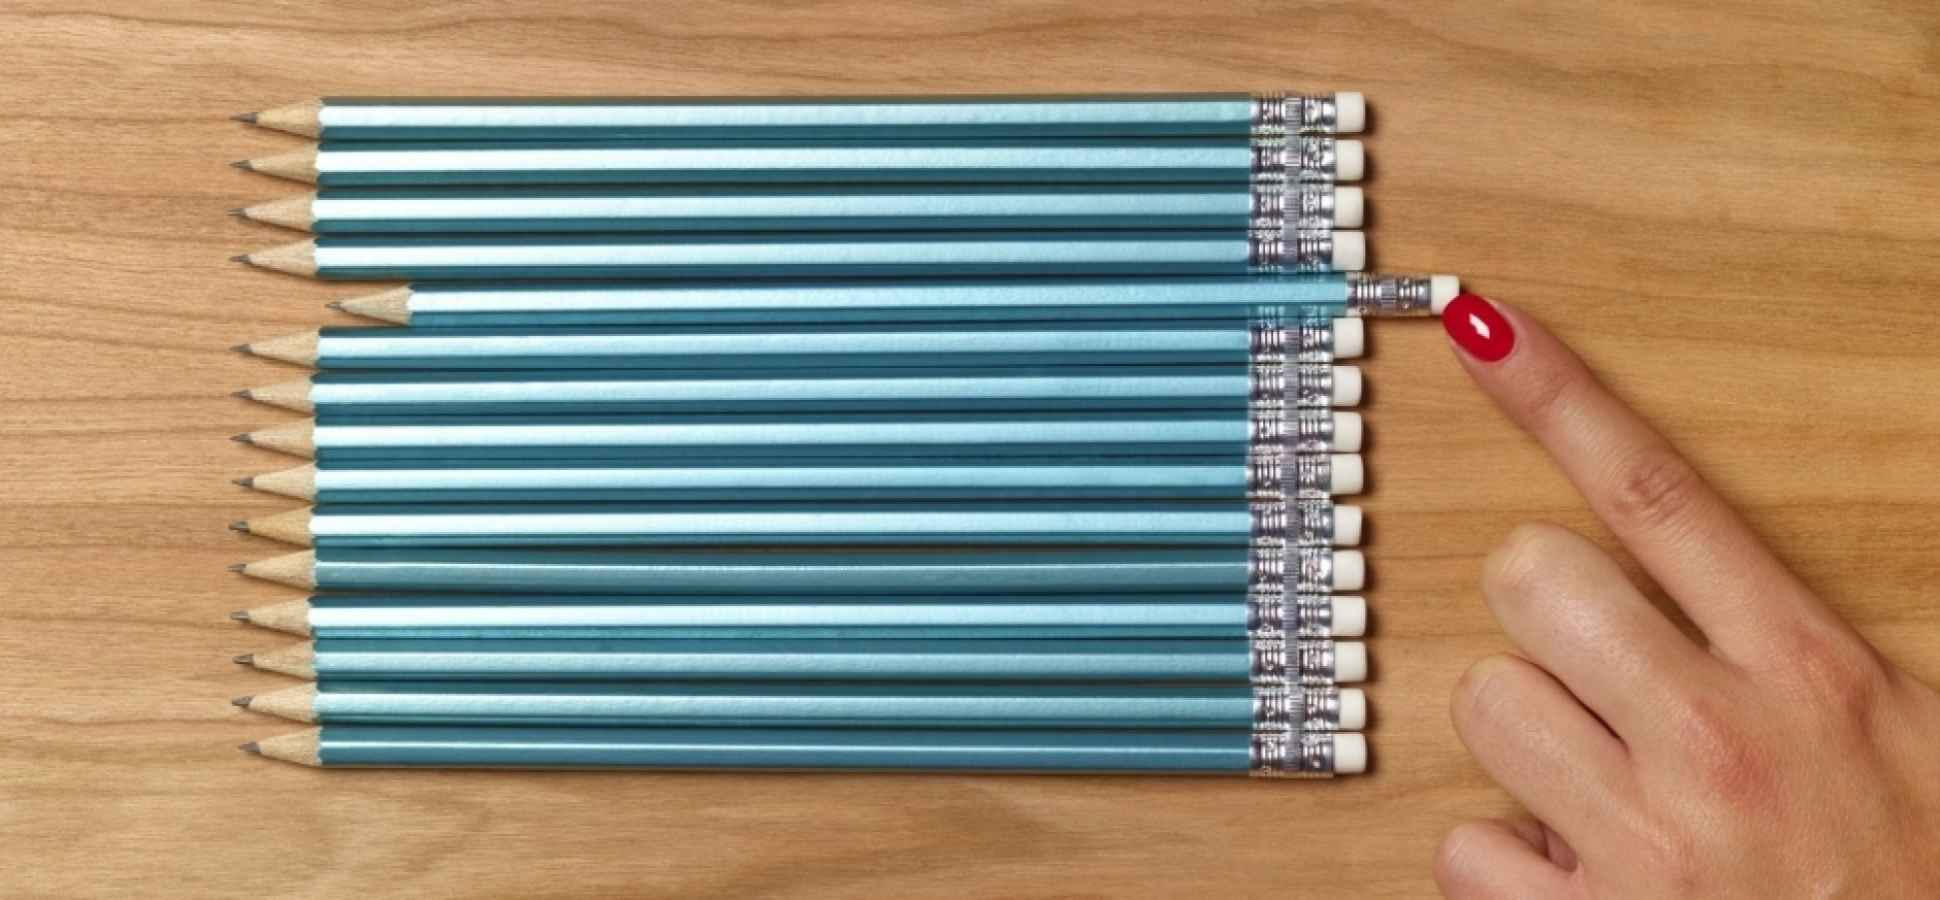 10 Smart Ways to Become More Dependable and Organized